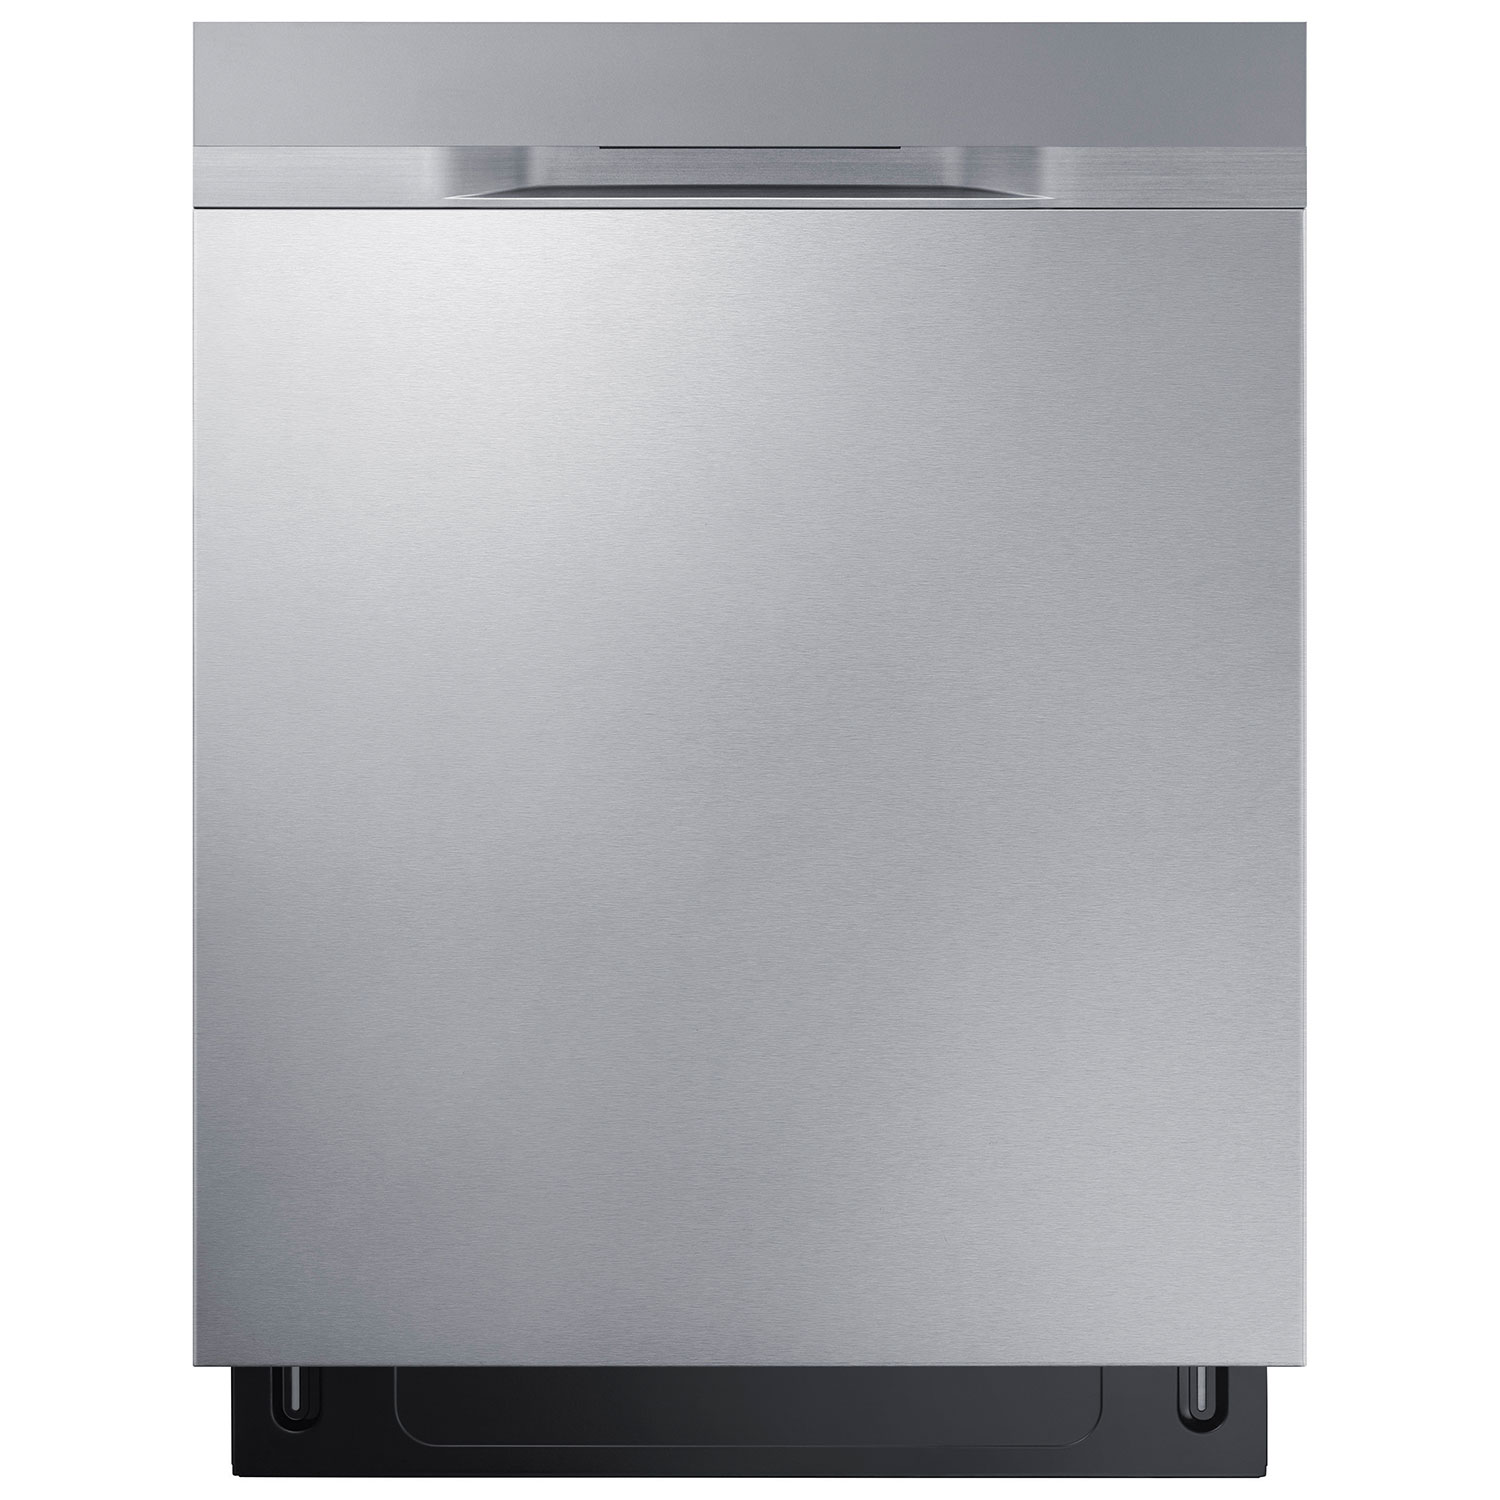 How To Clean The Inside Of A Stainless Steel Dishwasher Samsung 24 48db Tall Tub Built In Dishwasher With Stainless Steel